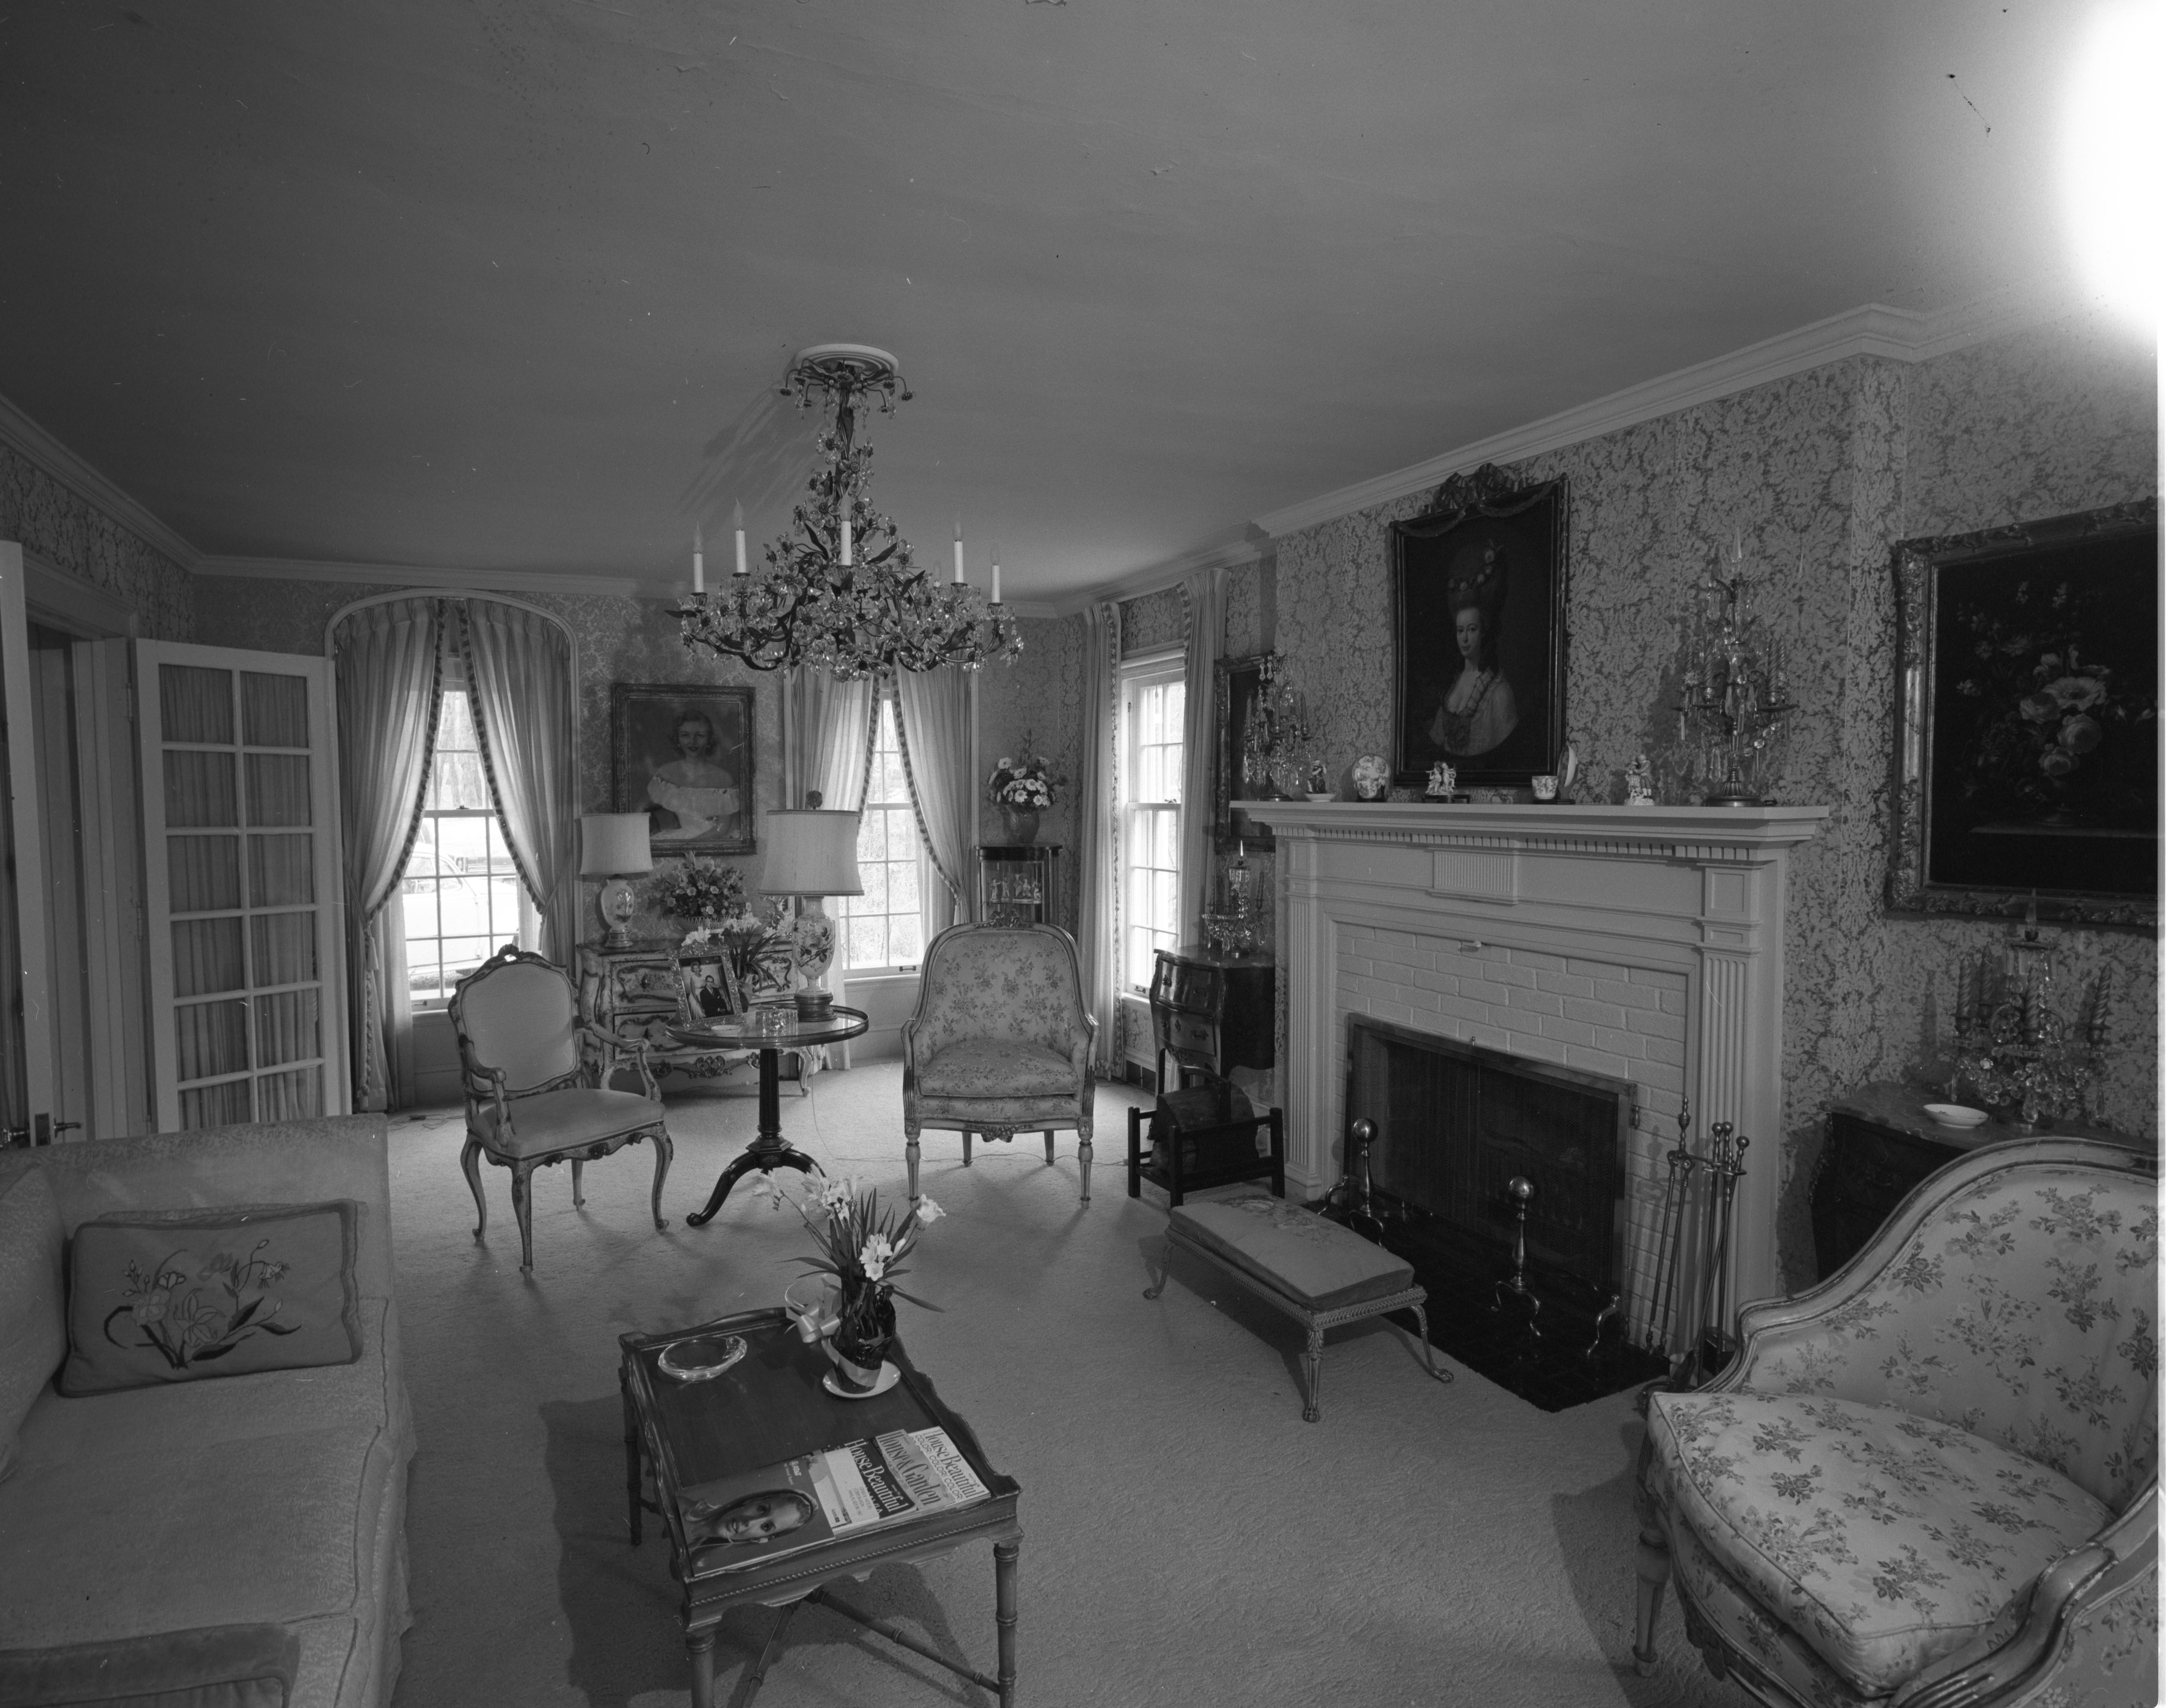 Living Room of Mr. and Mrs. Paul Tippett's Georgian Manor, April 1968 image